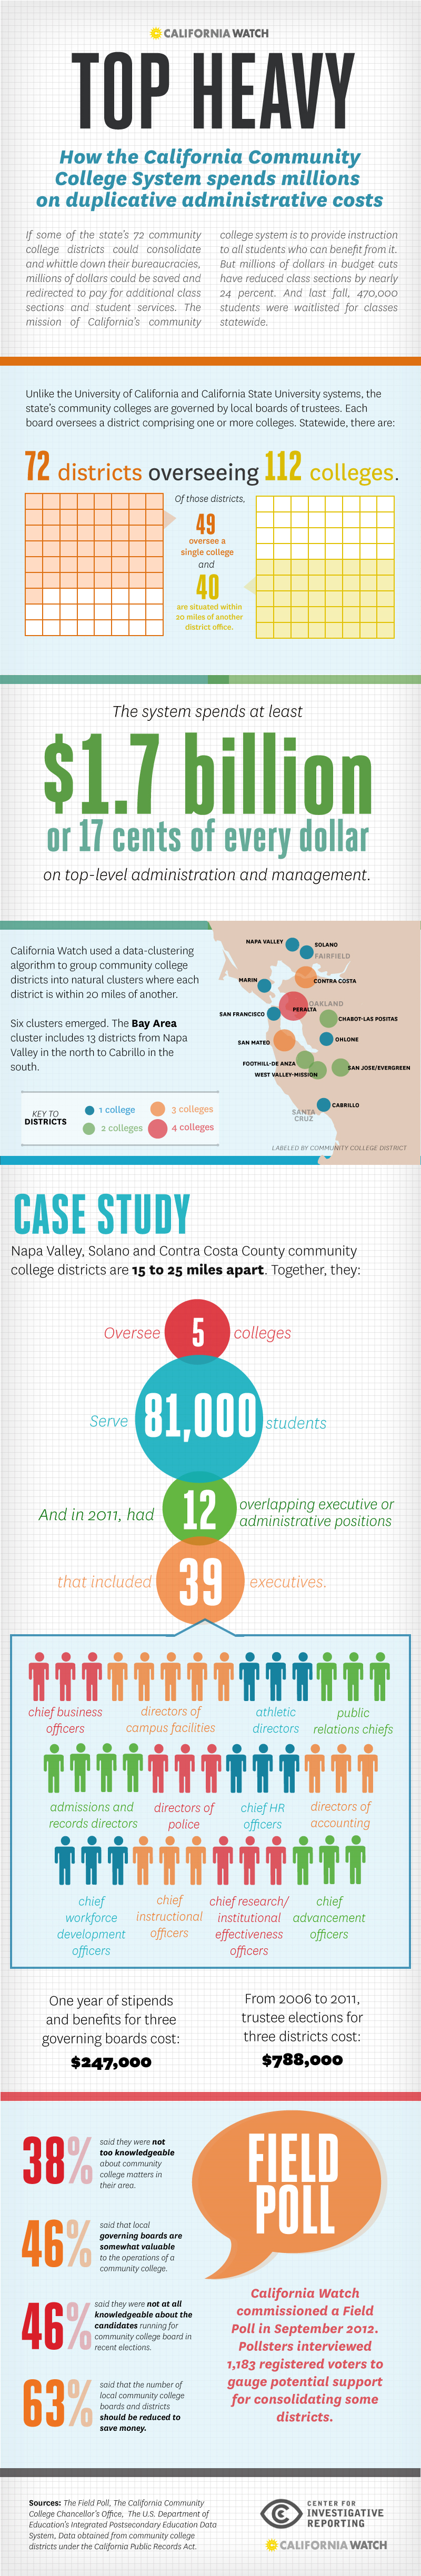 If some of California's 72 community college districts could consolidate their bureaucracies, millions of dollars could be saved and redirected to pay for additional class sections and student services.